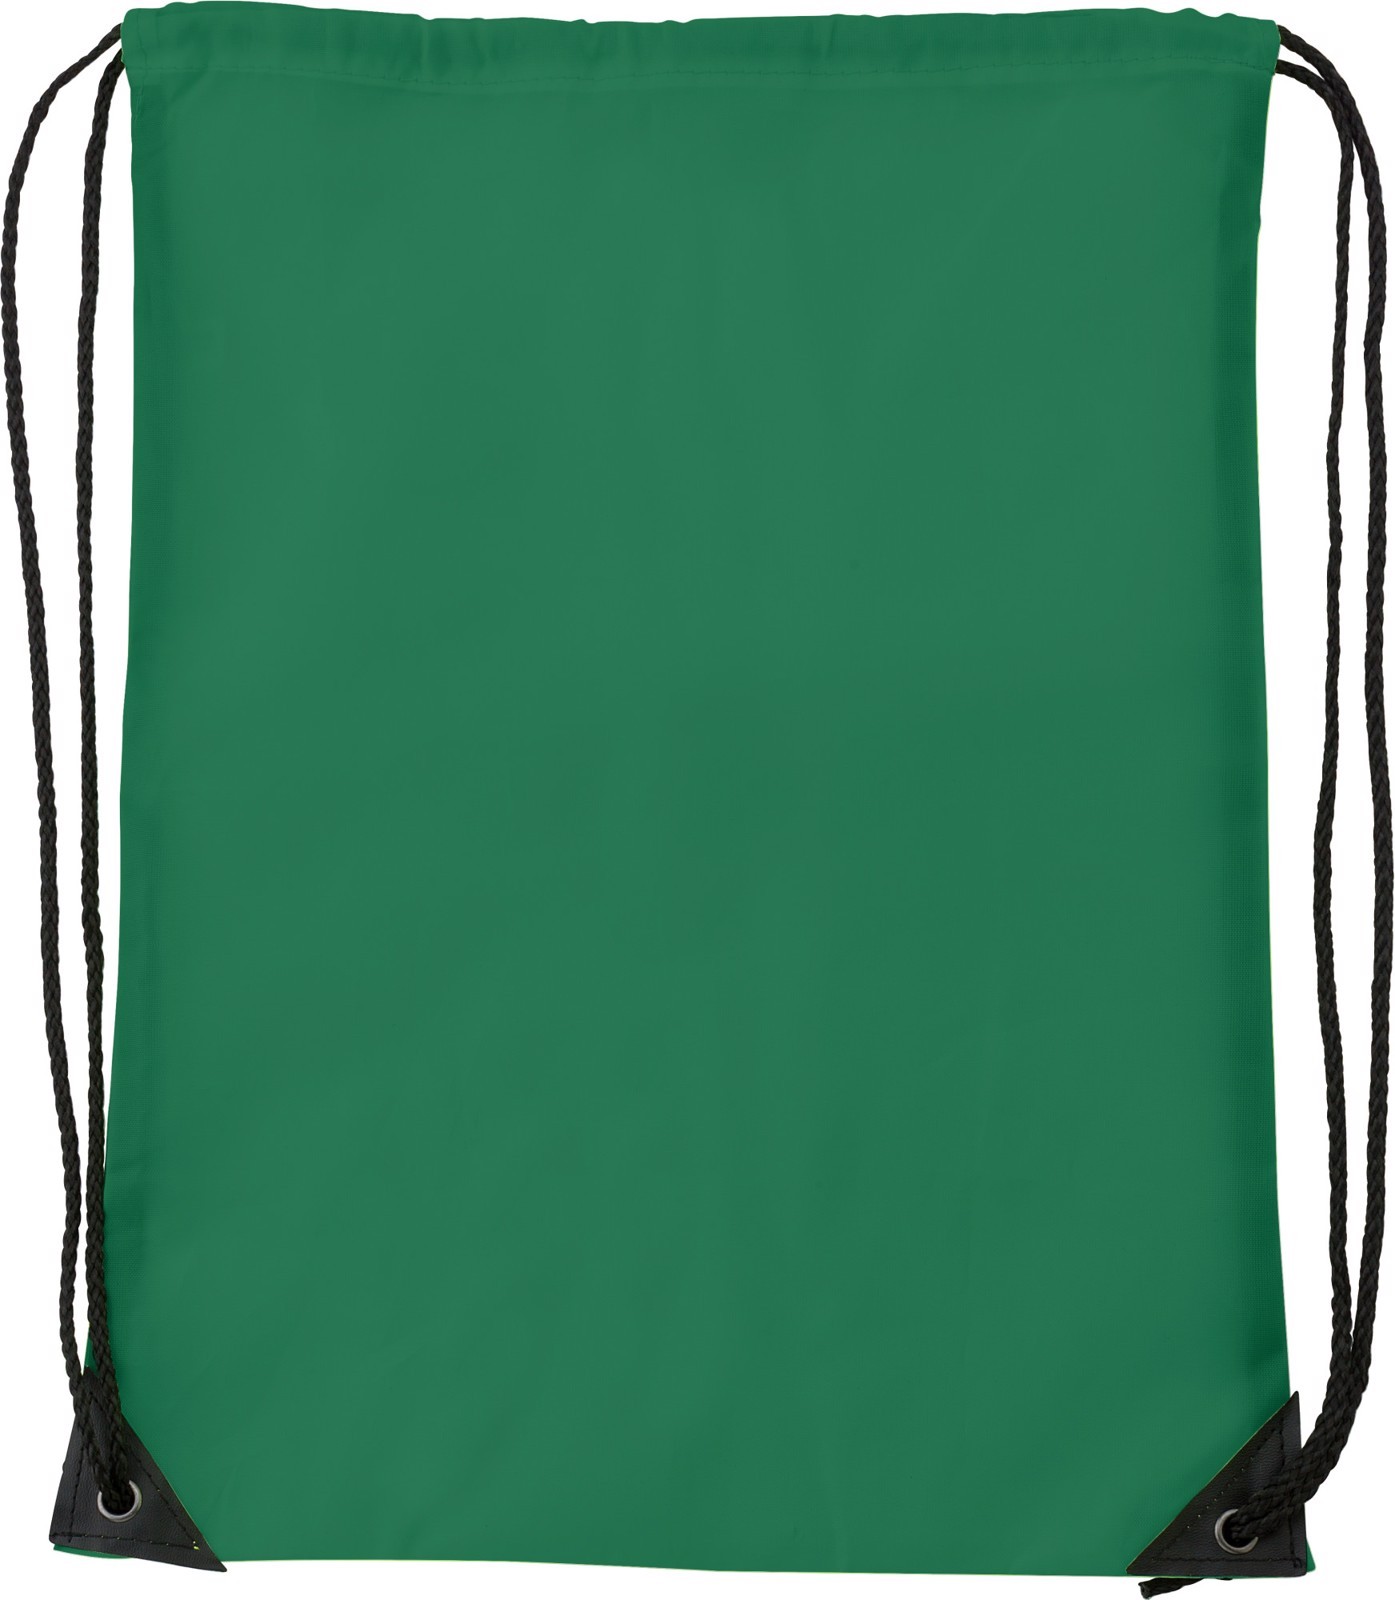 Polyester (210D) drawstring backpack - Green